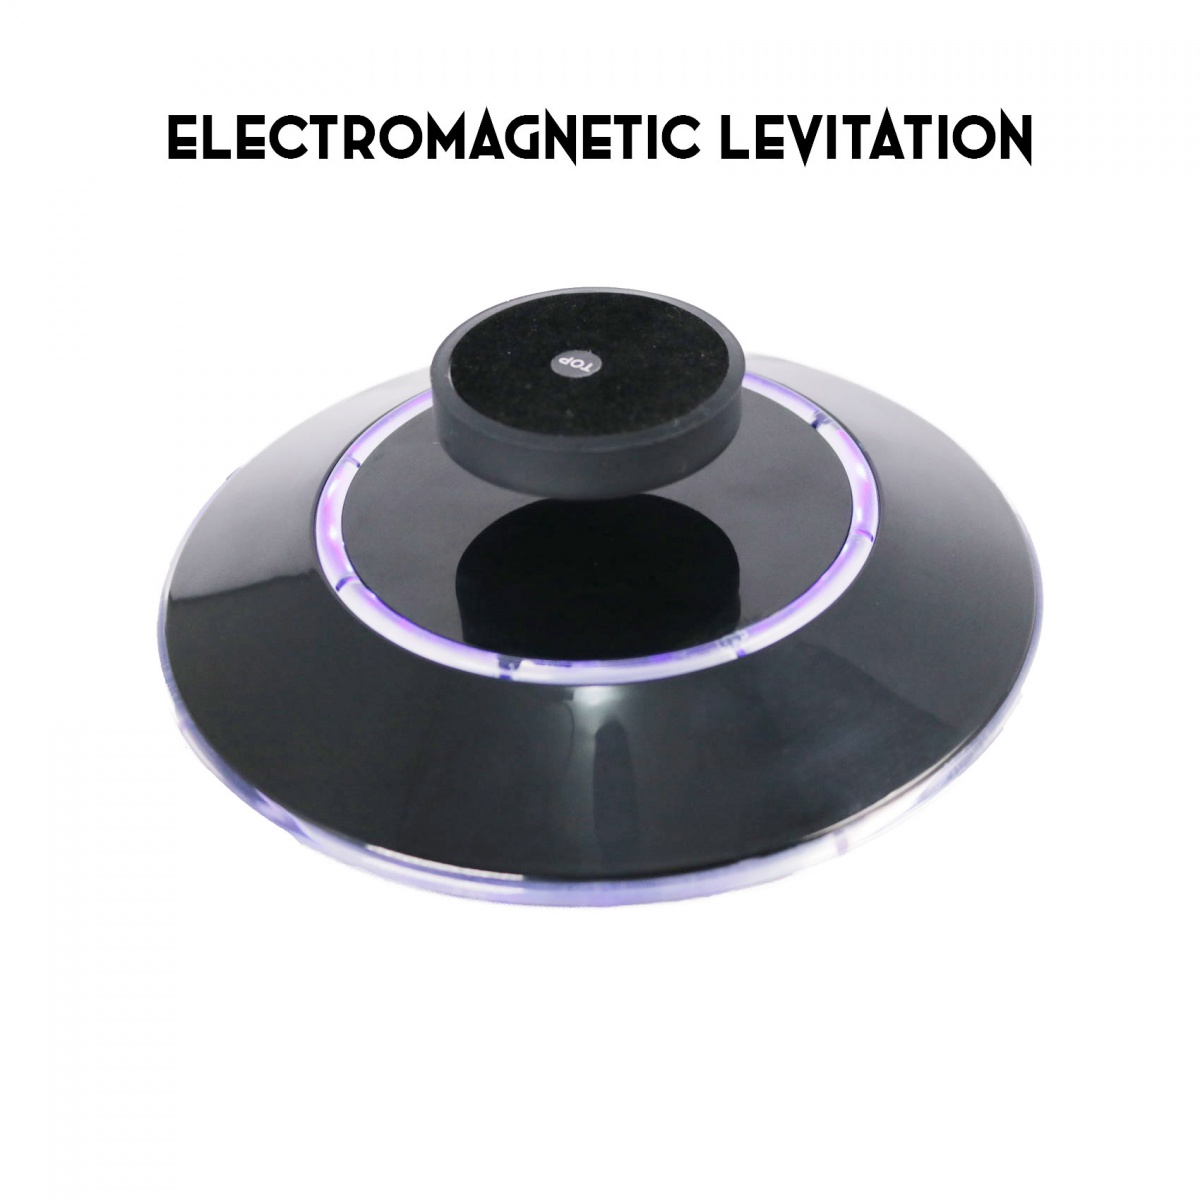 Electromagnetic Levitation Display Highlighter - Black